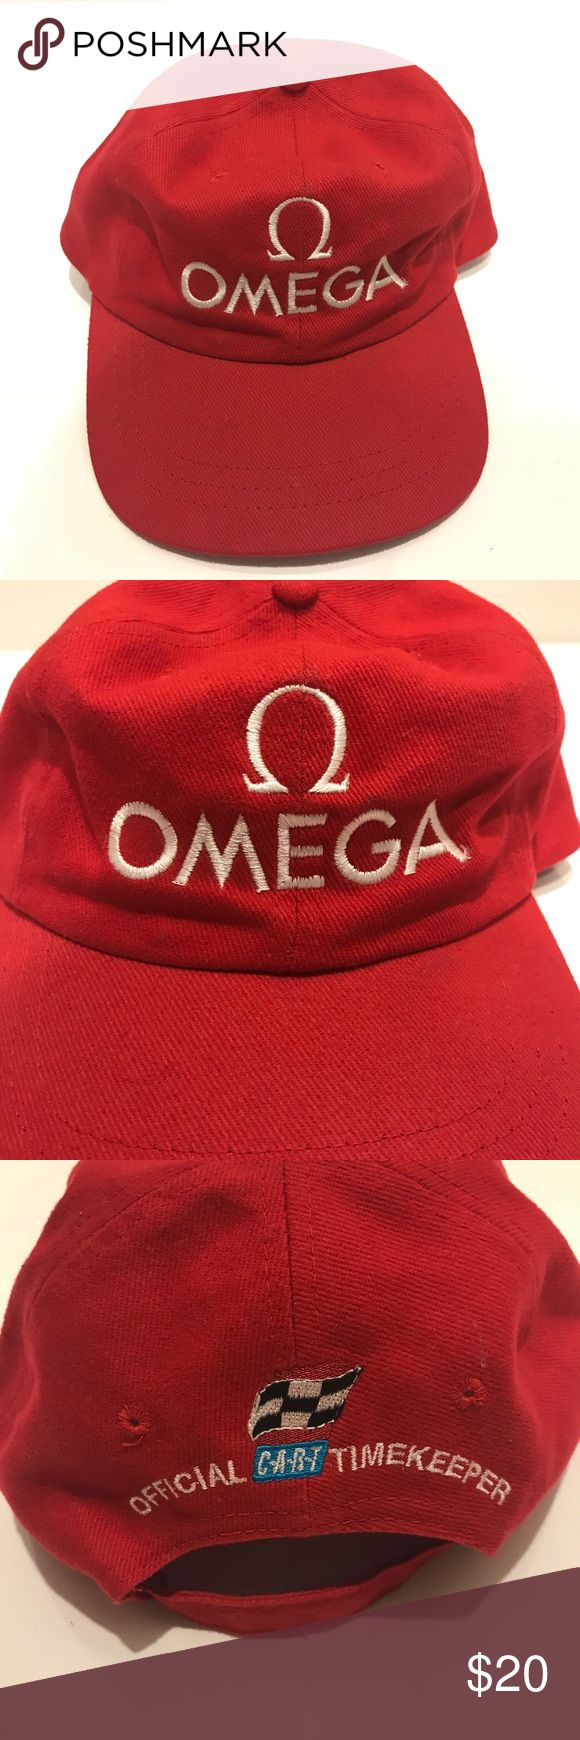 Vintage Omega watch Racing trucker style hat Cool vintage hat, great for any watch collector. Has more of that old school trucker style to it rather than a baseball cap. Overall in good condition with no major damage. Vintage Accessories Hats